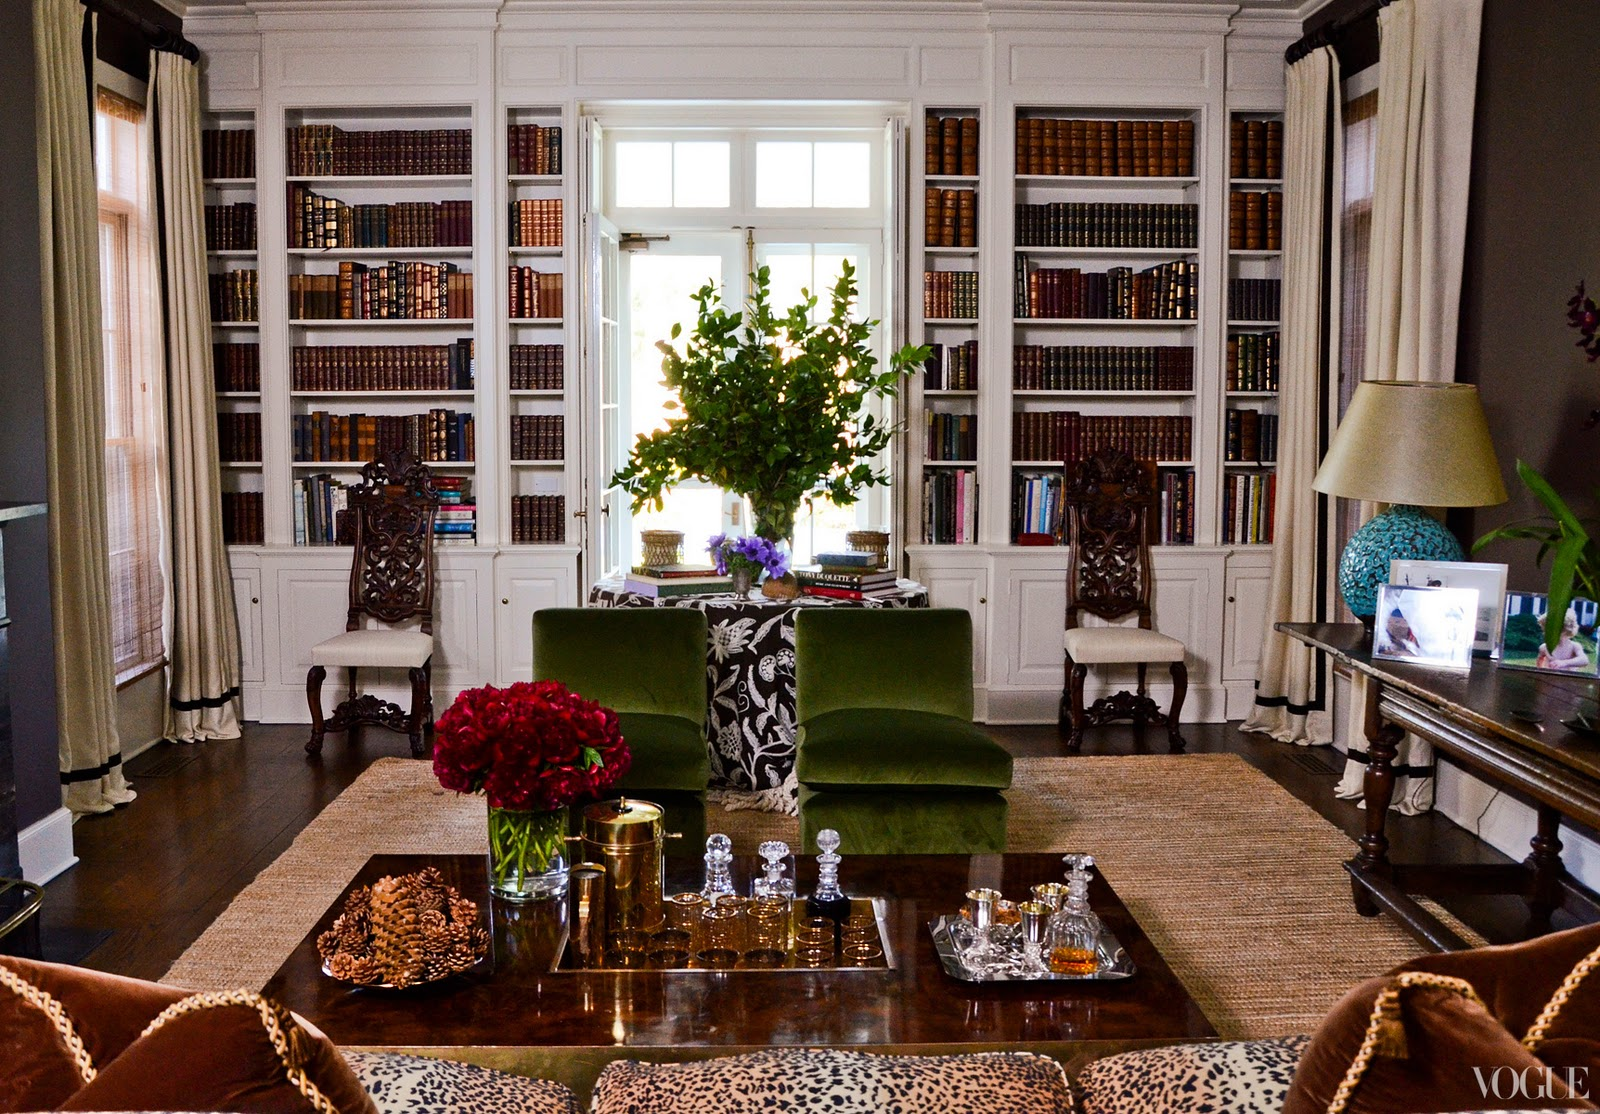 Real estate and refinement aerin lauder 39 s home east hampton - Green living room ideas in east hampton new york ...